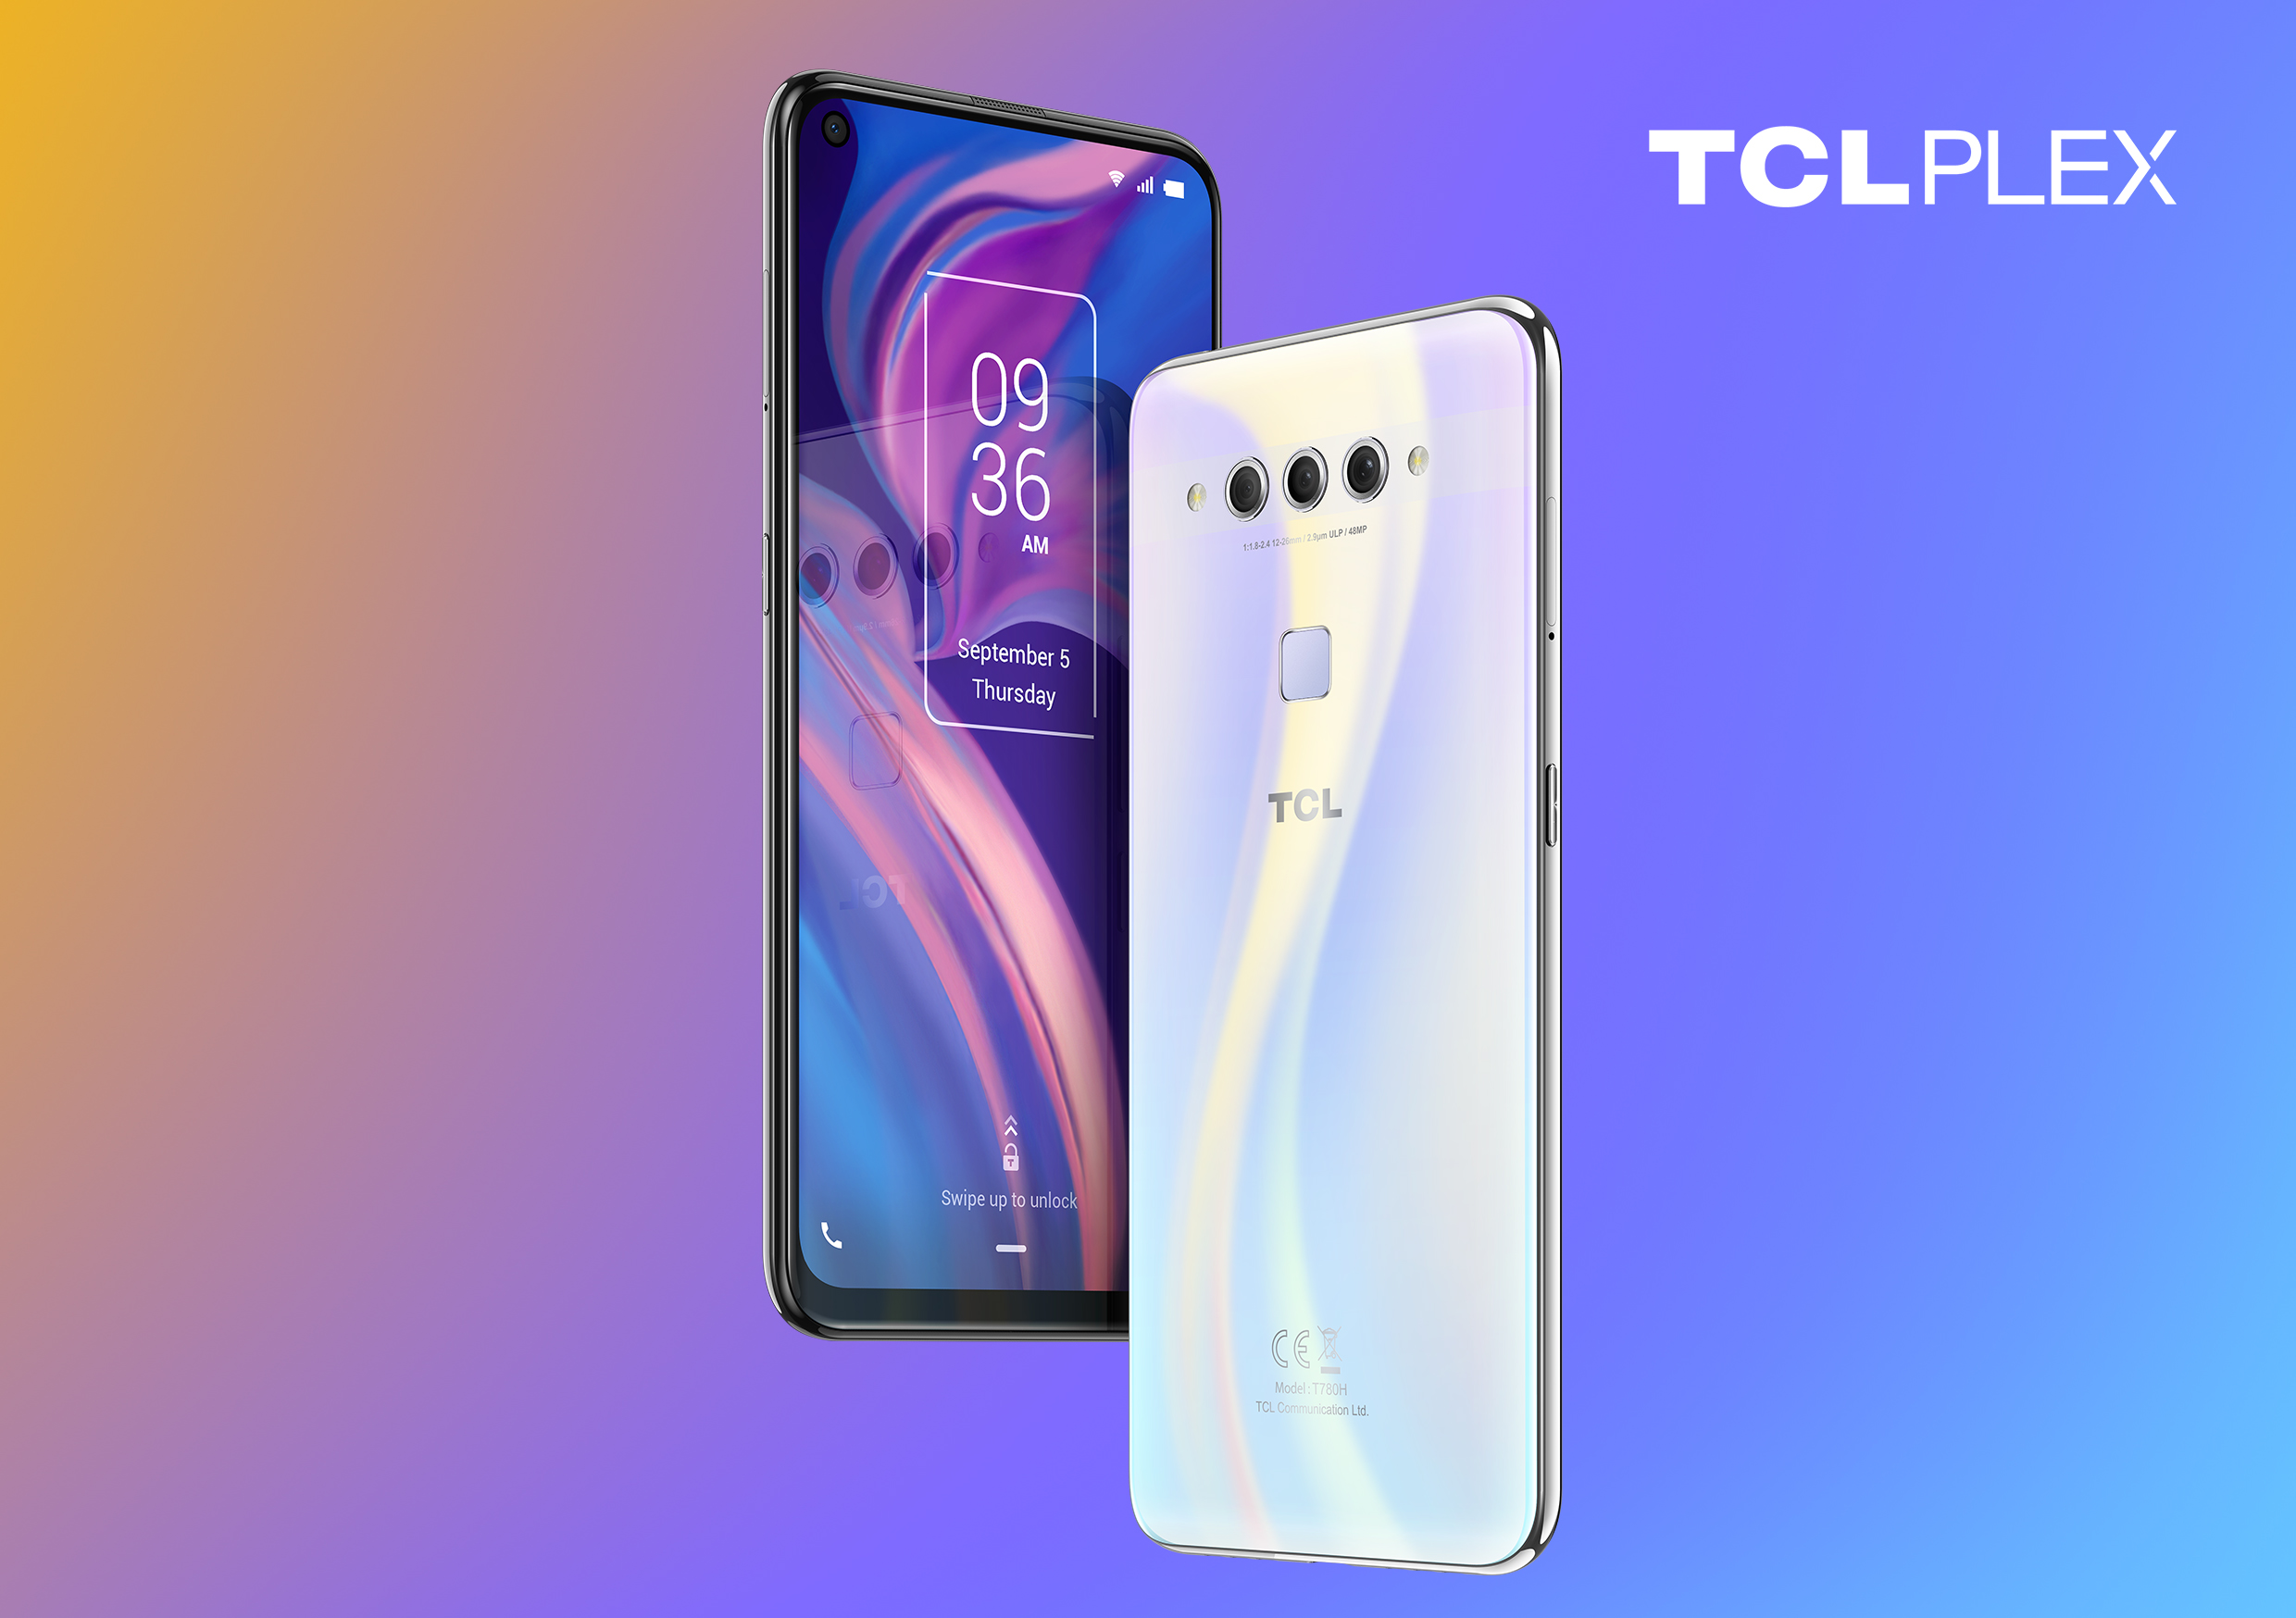 TCL to enter local markets with its first smartphone and smart watch